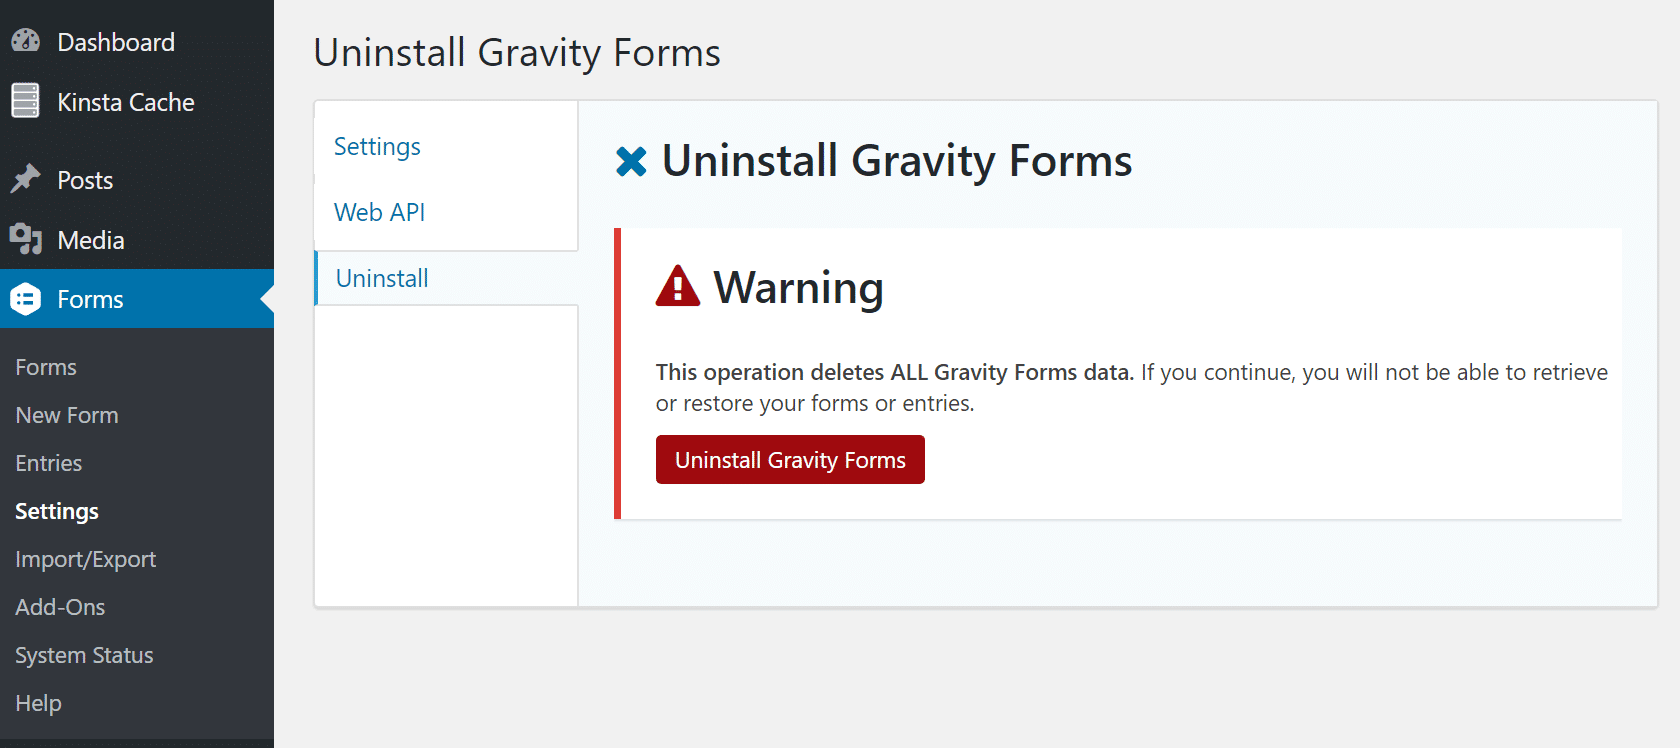 Uninstall Gravity Forms